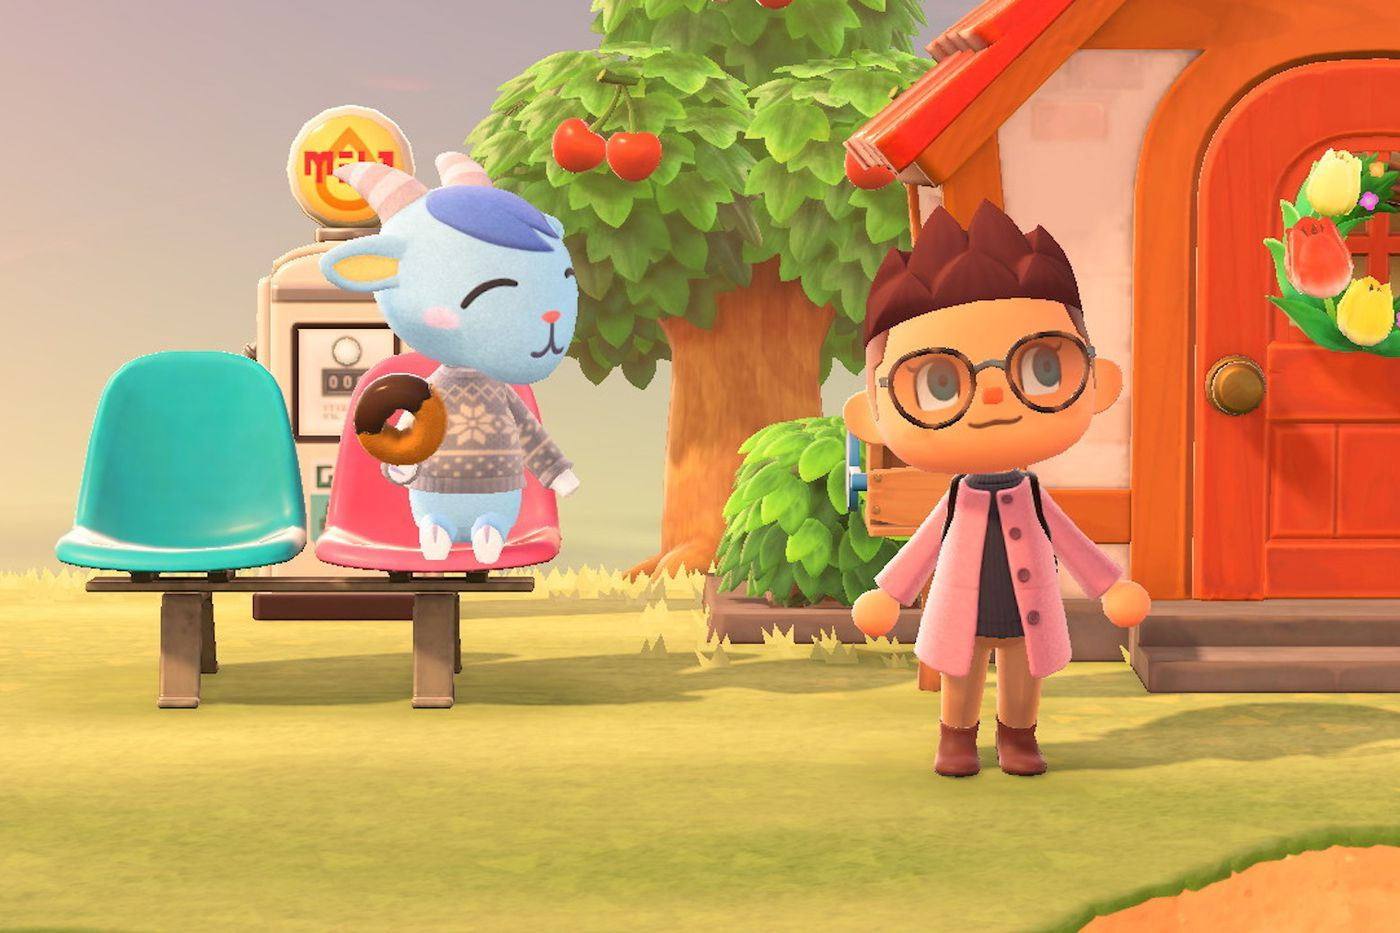 11+ Animal crossing new horizons events images